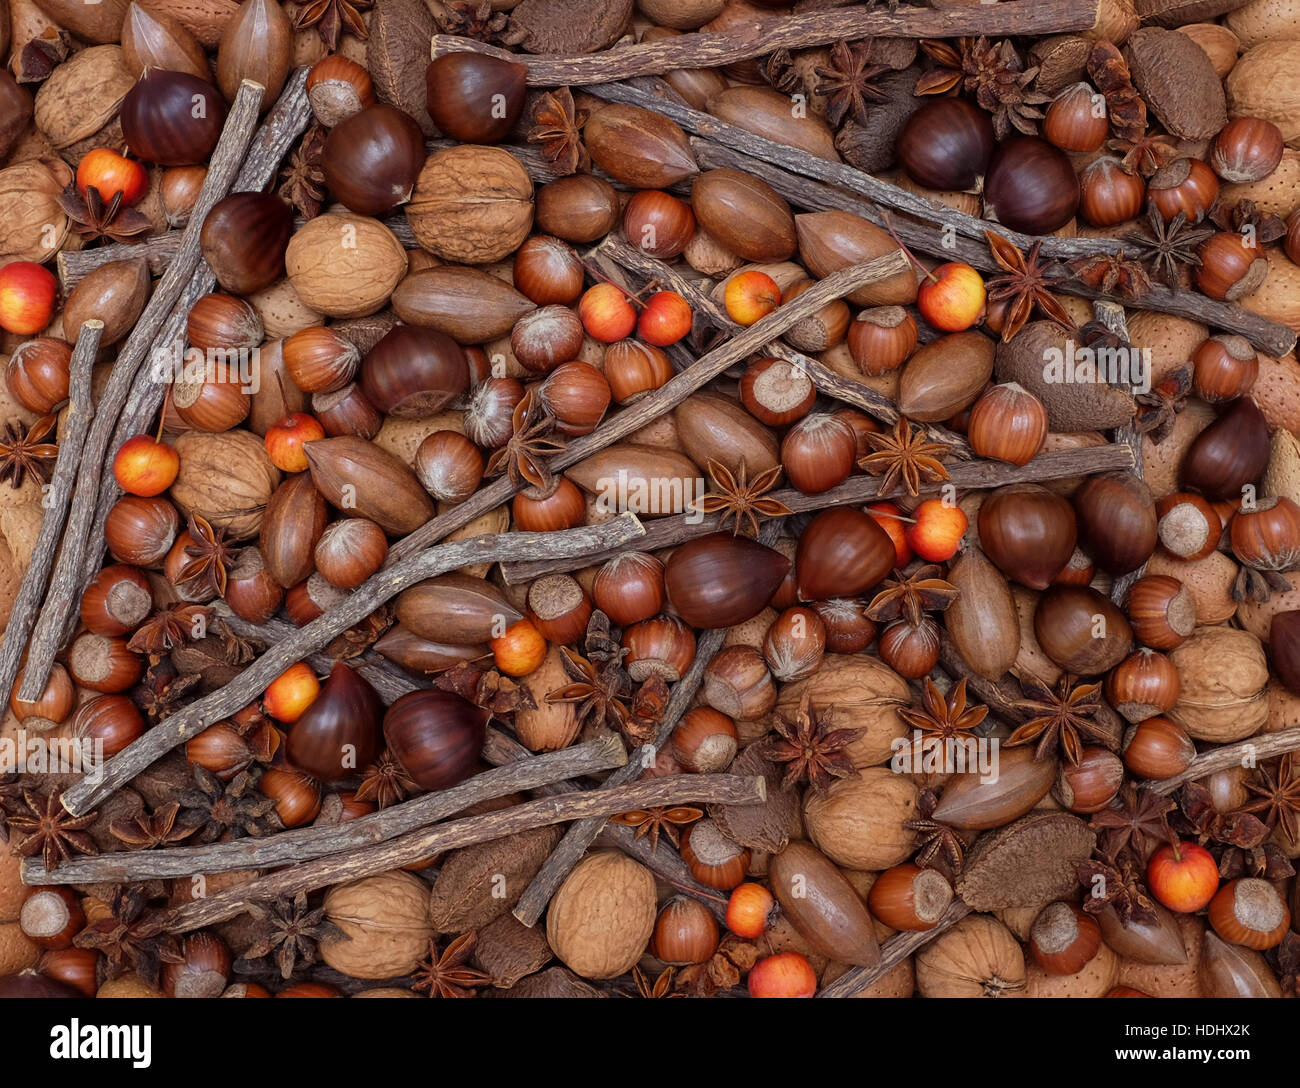 Festive natural background with a mix of chestnuts, almonds, brazil nuts, pecans, hazelnuts, star anise, liquorice - Stock Image